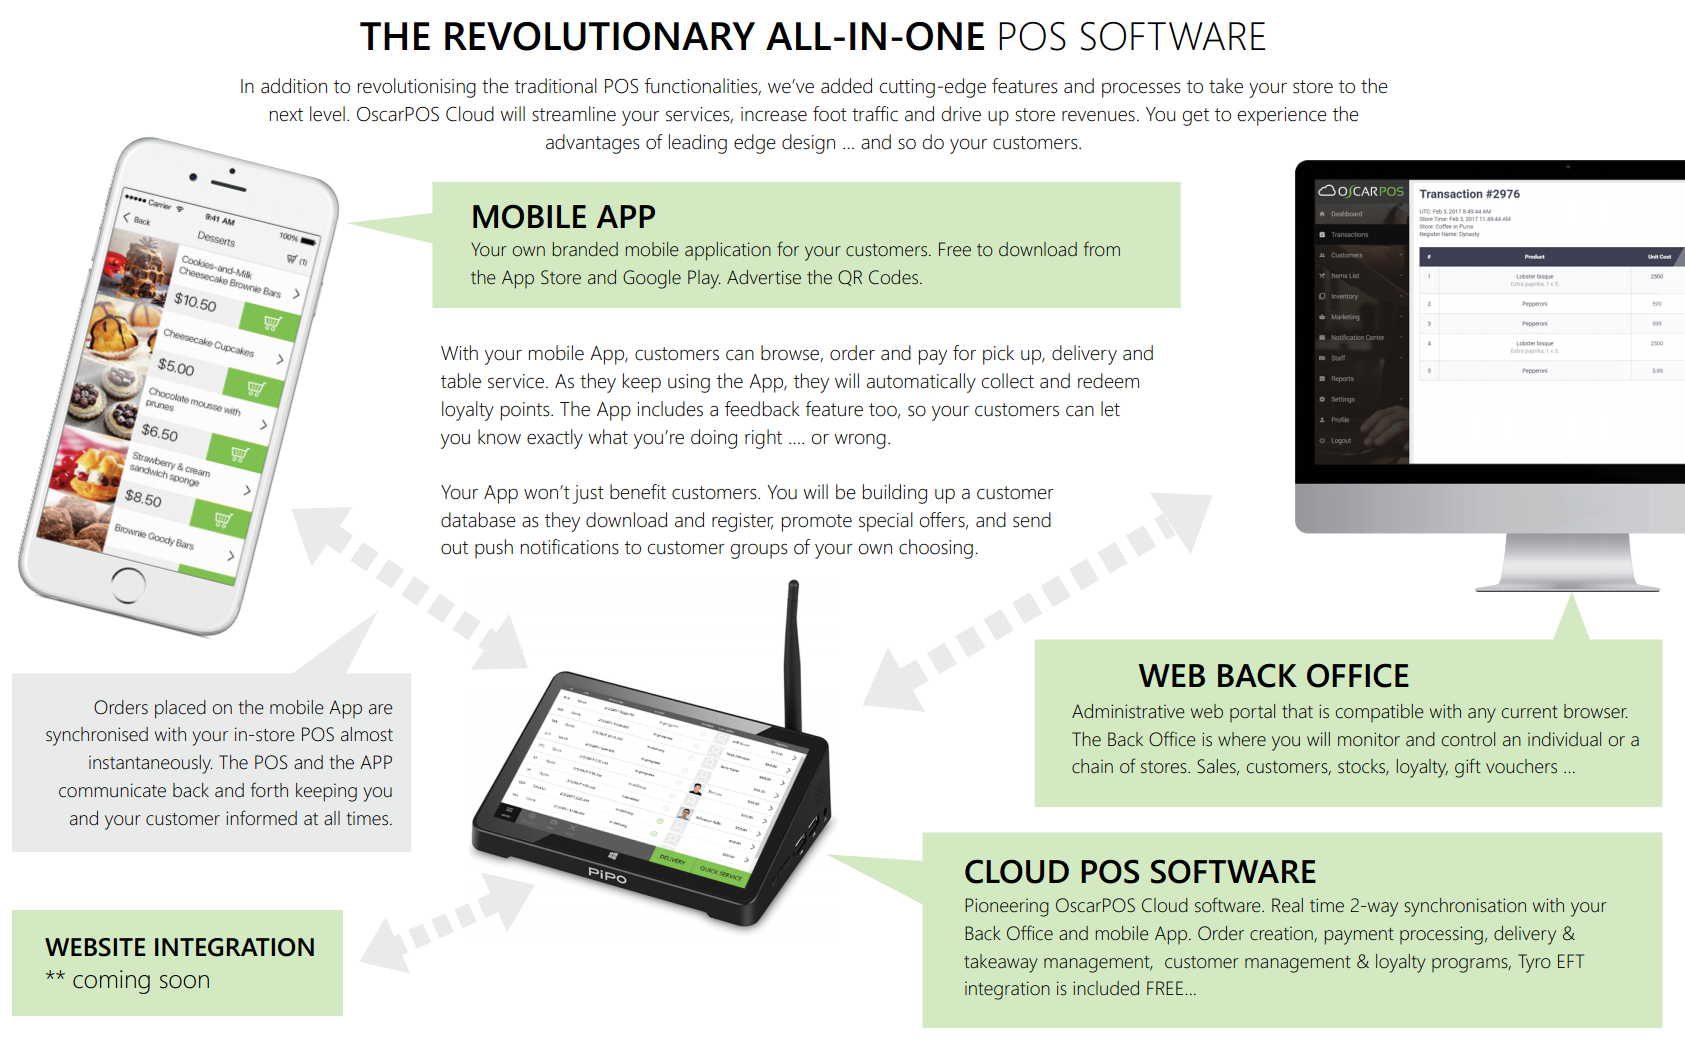 OscarPOs Cloud - The Revolutionary All-In-One POS Software